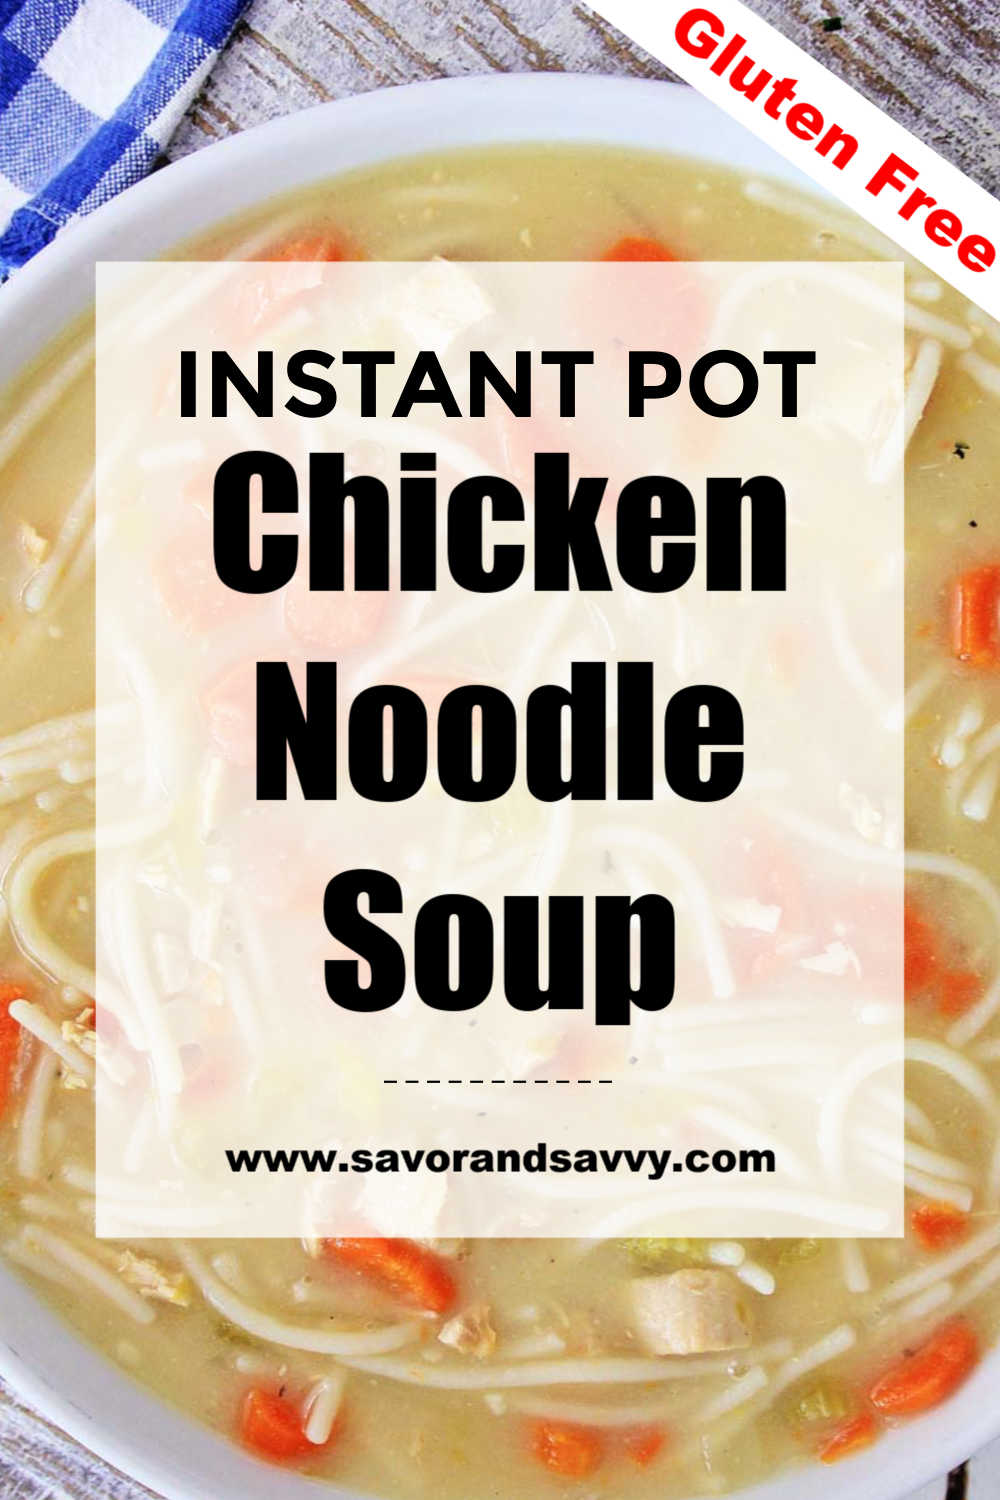 Gluten Free Chicken Noodle Soup made in the Instant Pot! This is a perfect freezer meal as well with free printable labels for the freezer bags! #freezermeal #instantpot #glutenfree #chickennoodlesoup